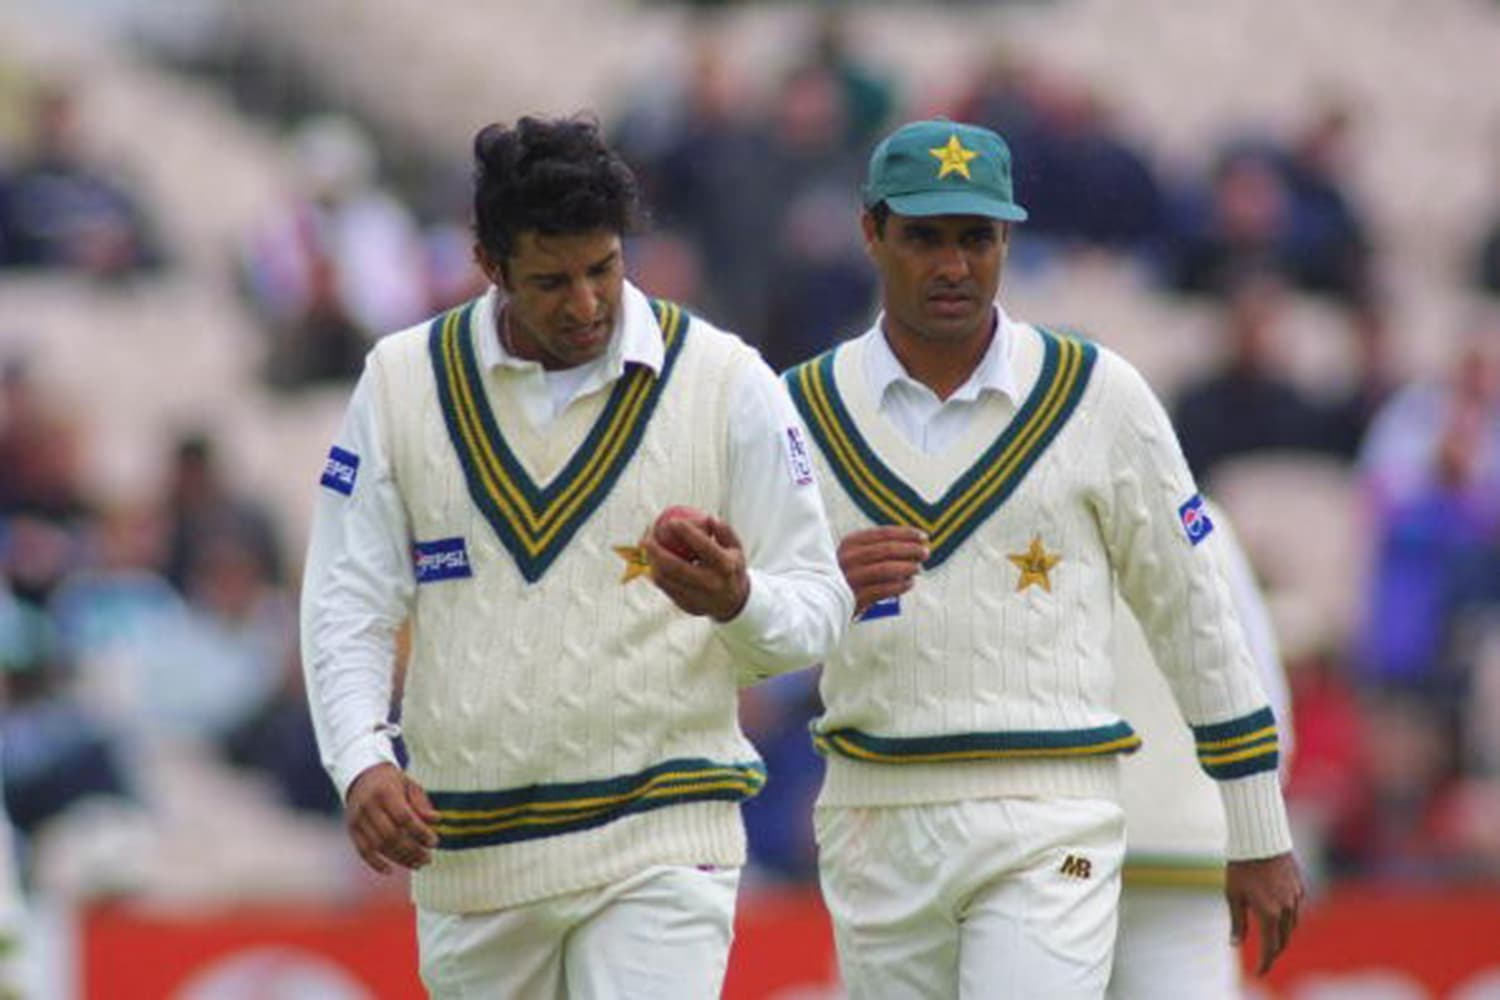 Waqar advising his fast bowling partner, Wasim.